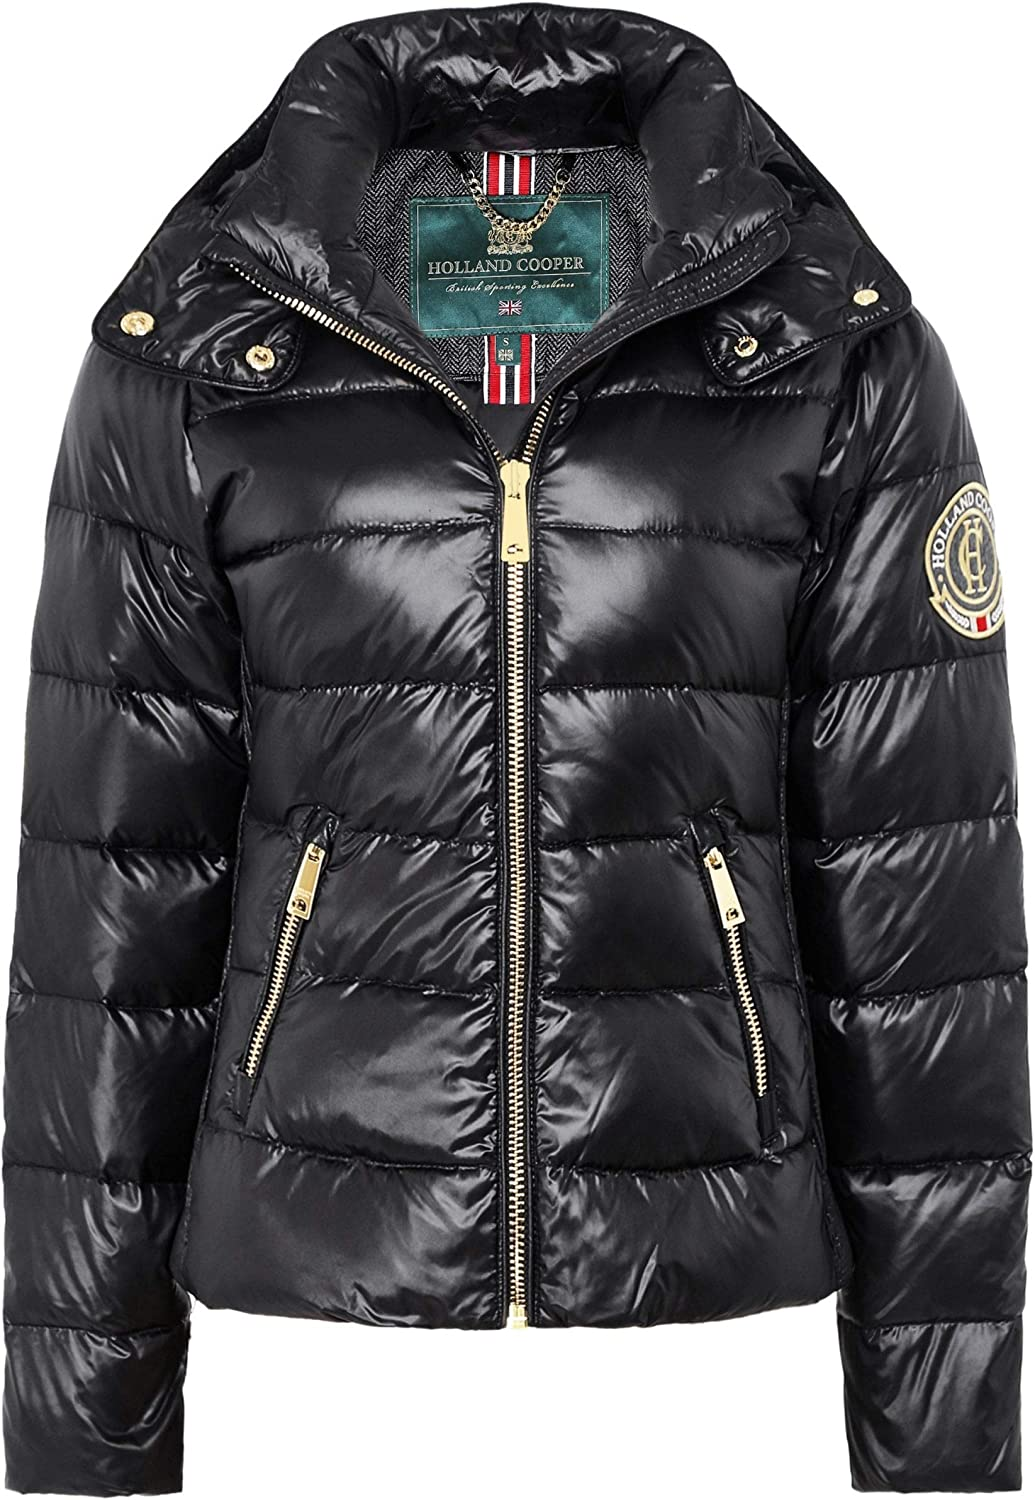 Holland Cooper Women's Megeve Down Puffer Coat Black